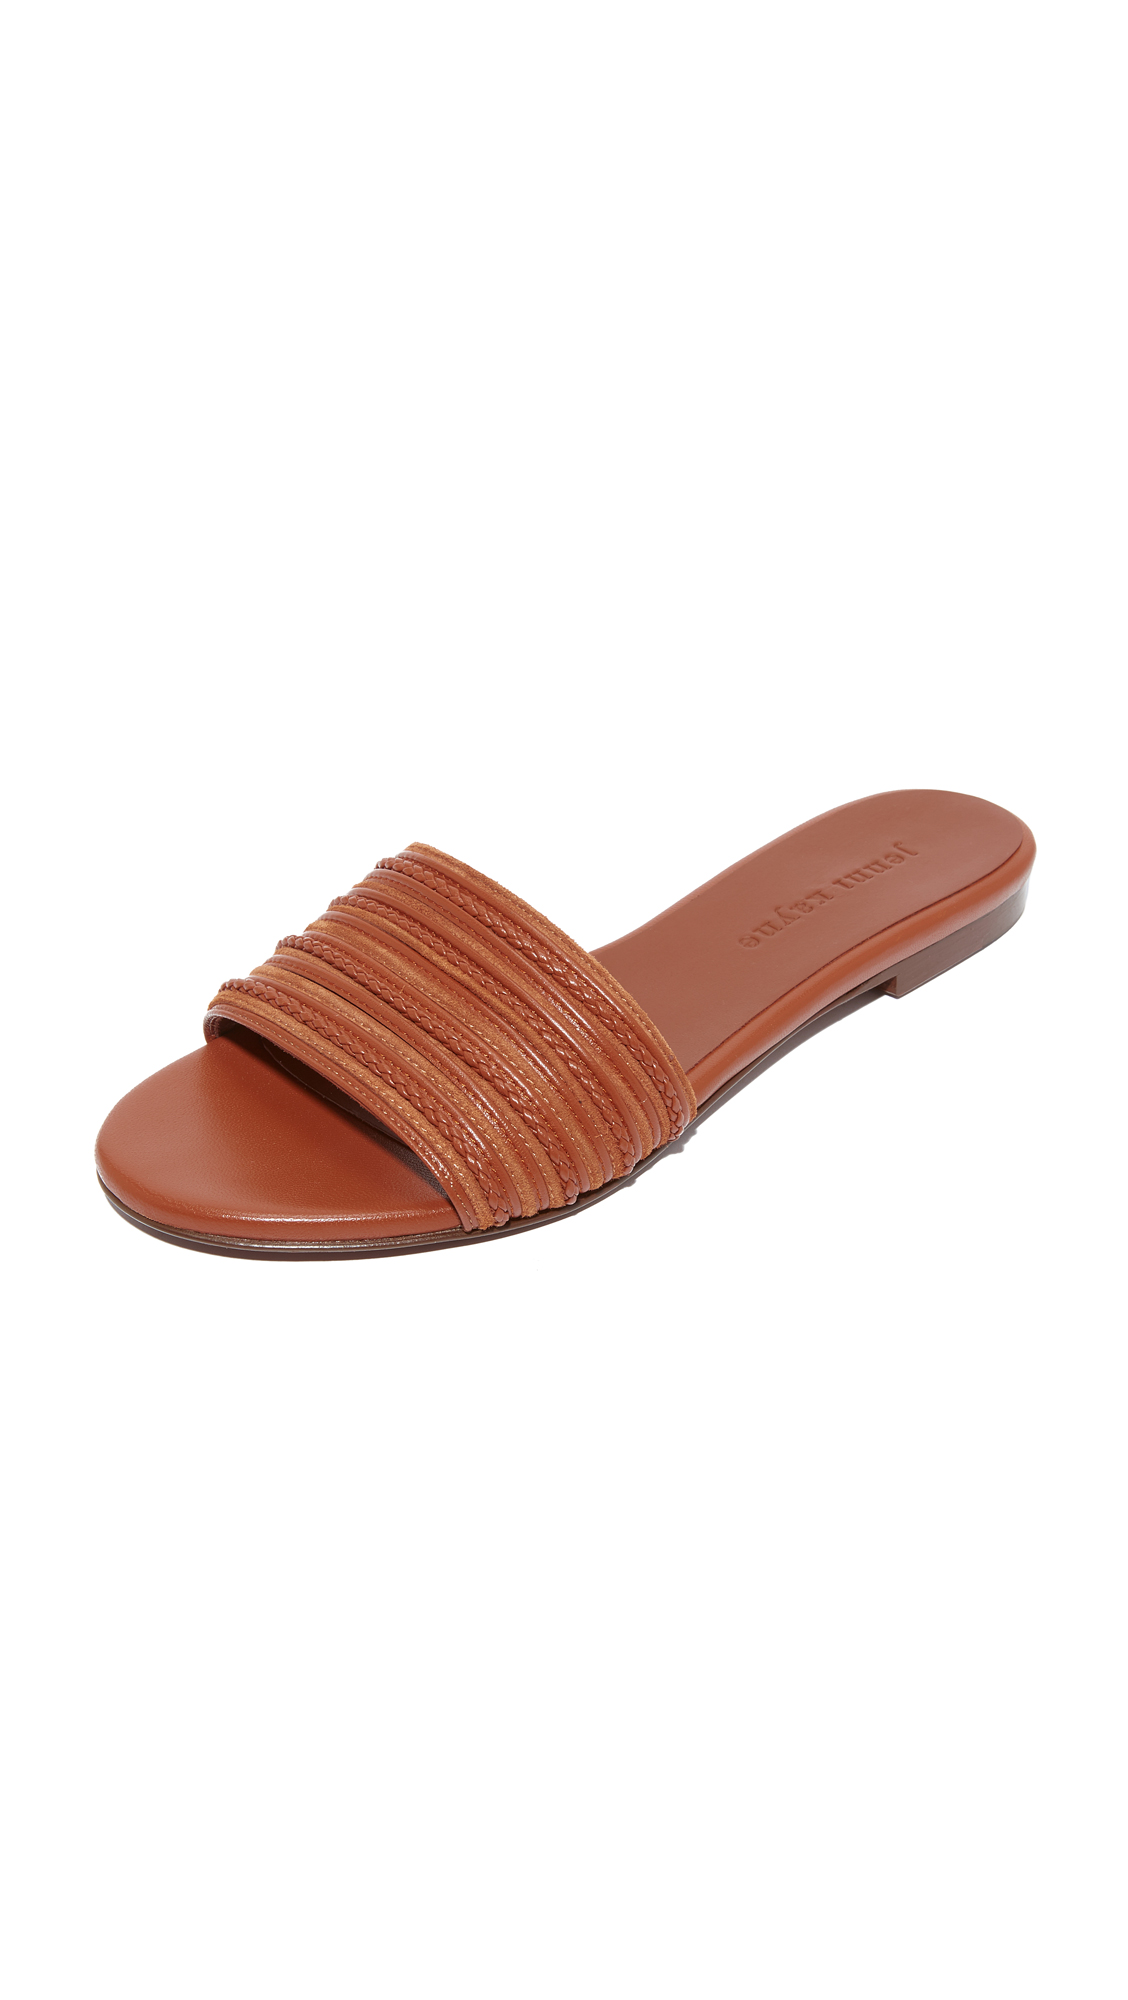 Jenni Kayne Knotted Slide Sandal - Saddle